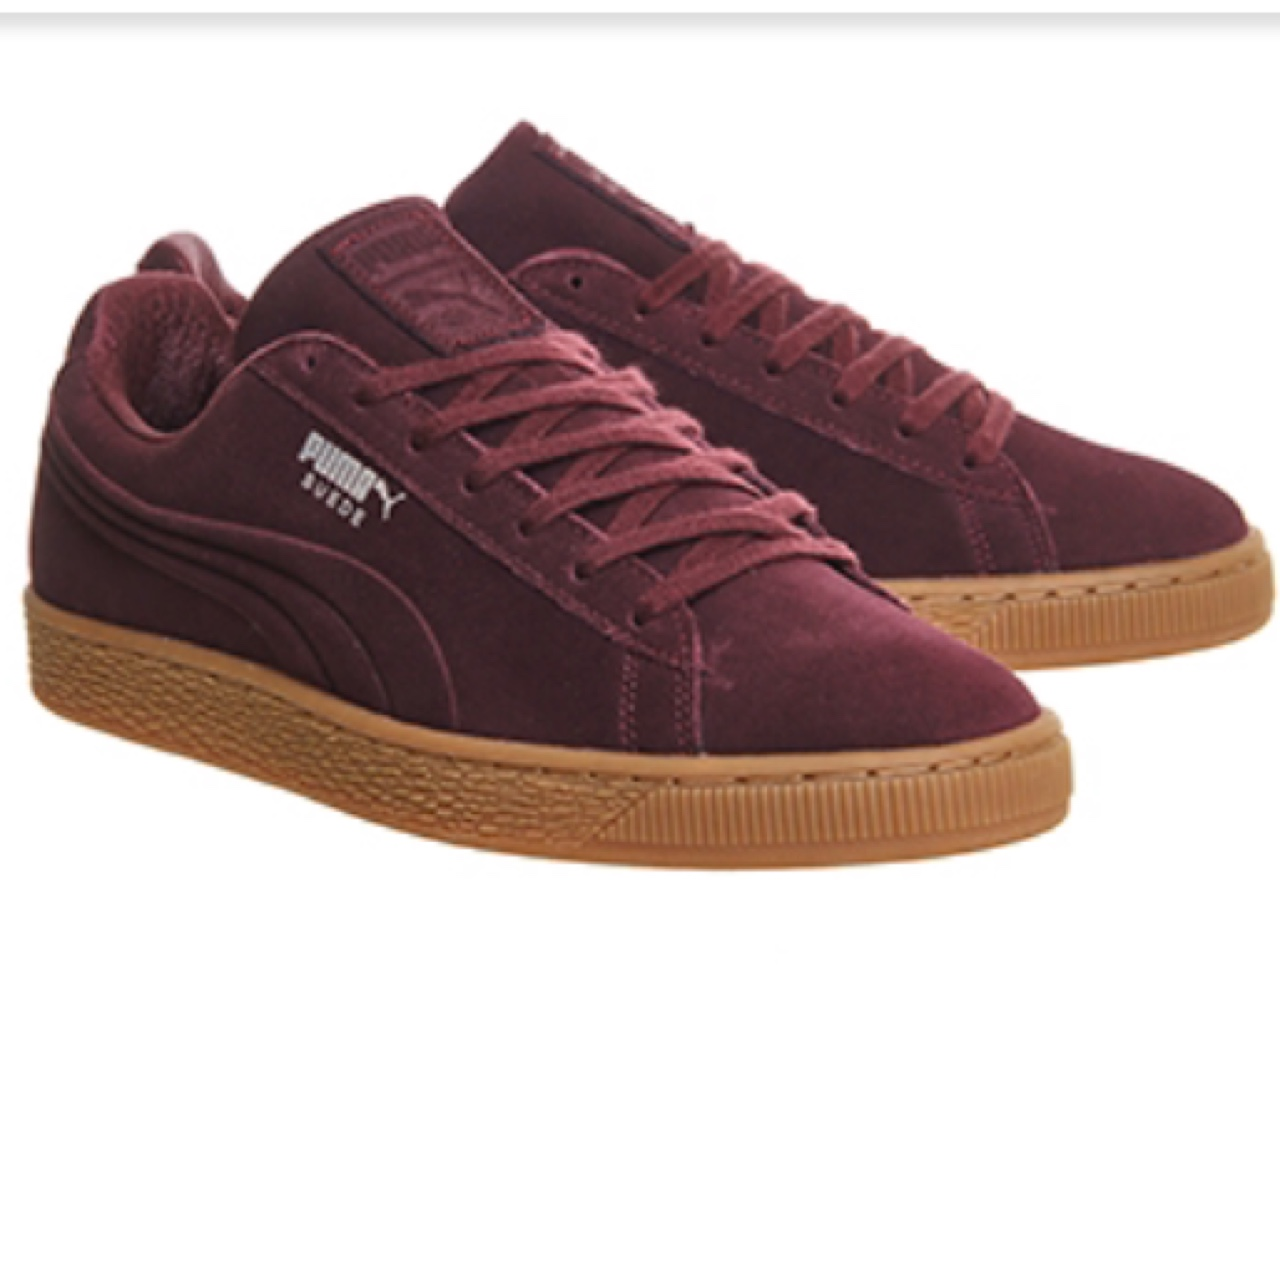 online store 478ba 1c80e Rare Puma Suede Maroon Limited edition going cheap ...